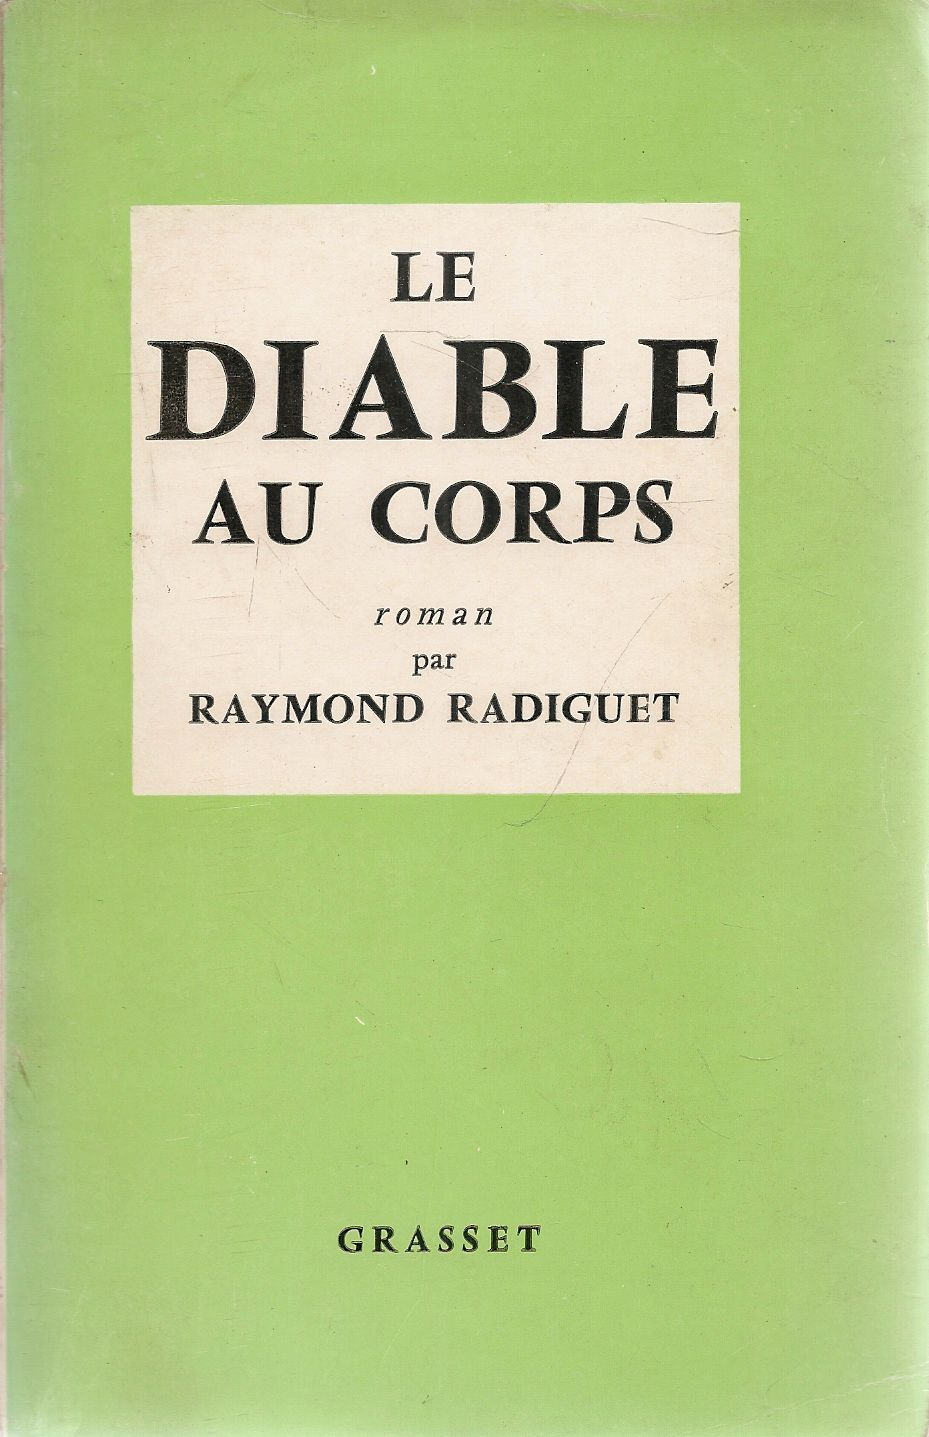 LE DIABLE AU CORPS - RAIMOND RADIGUET - GRASSET 1957 - FRENCH TEXT